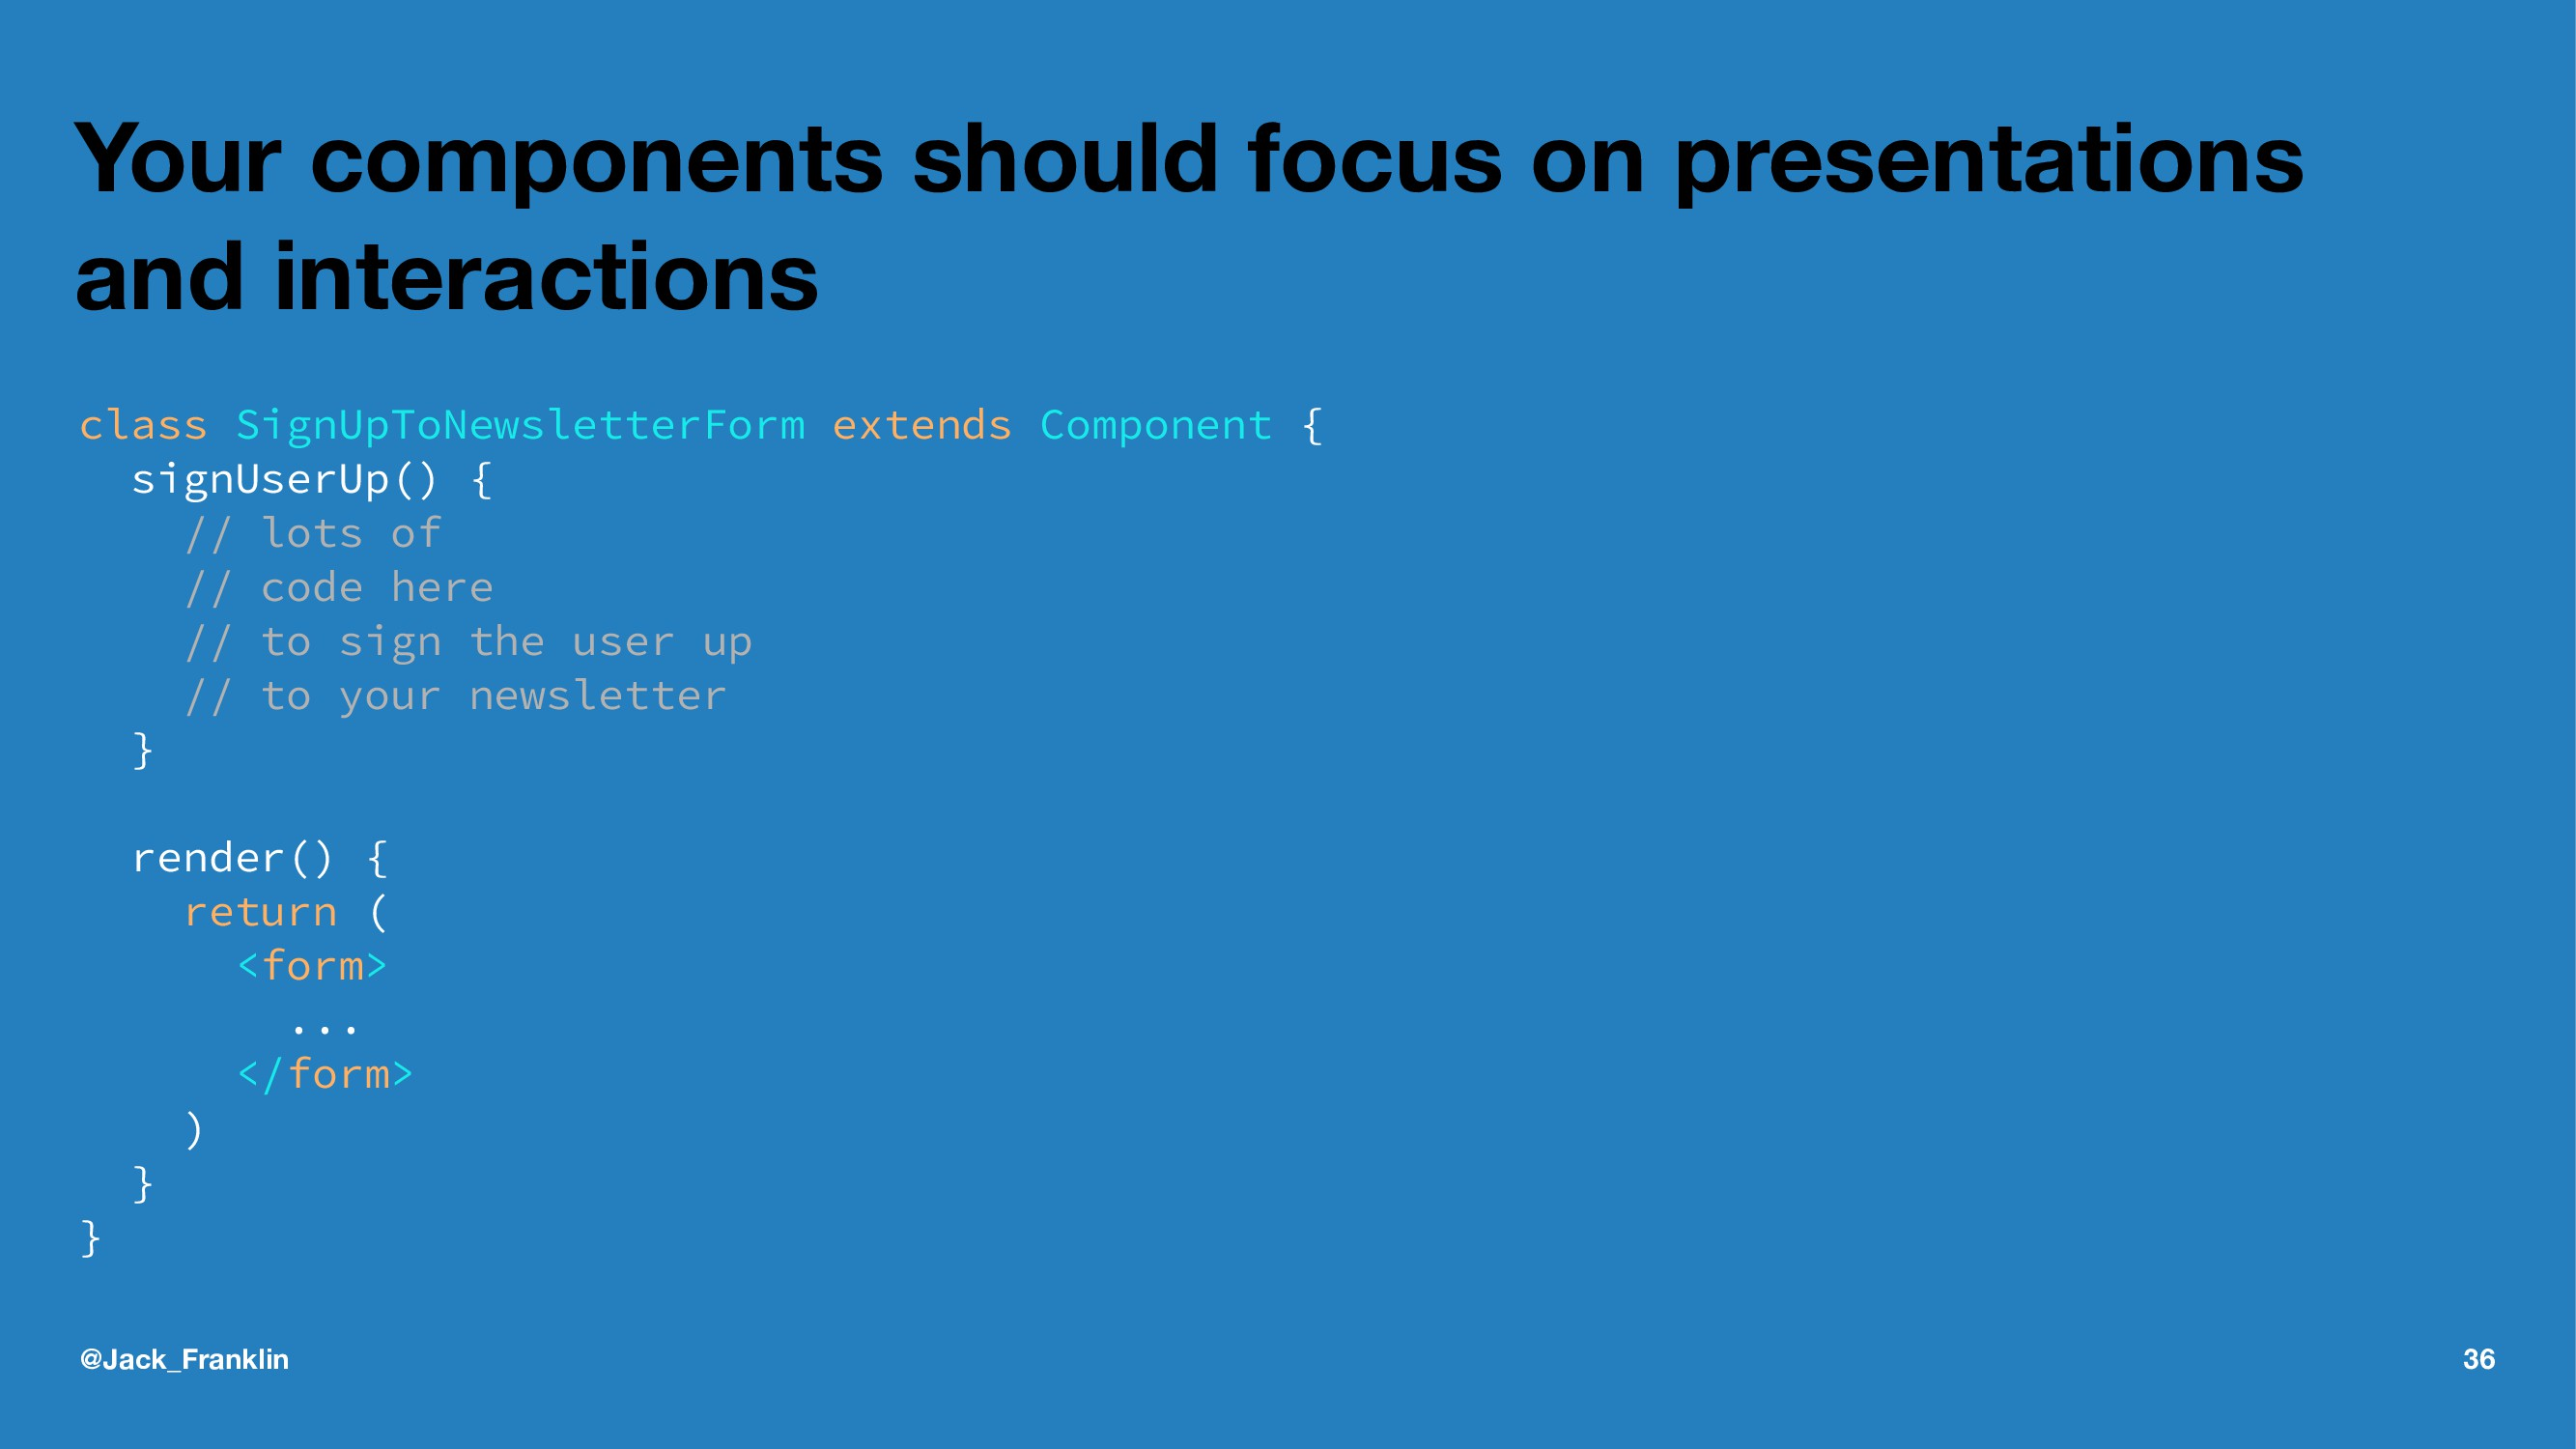 Your components should focus on presentations a...